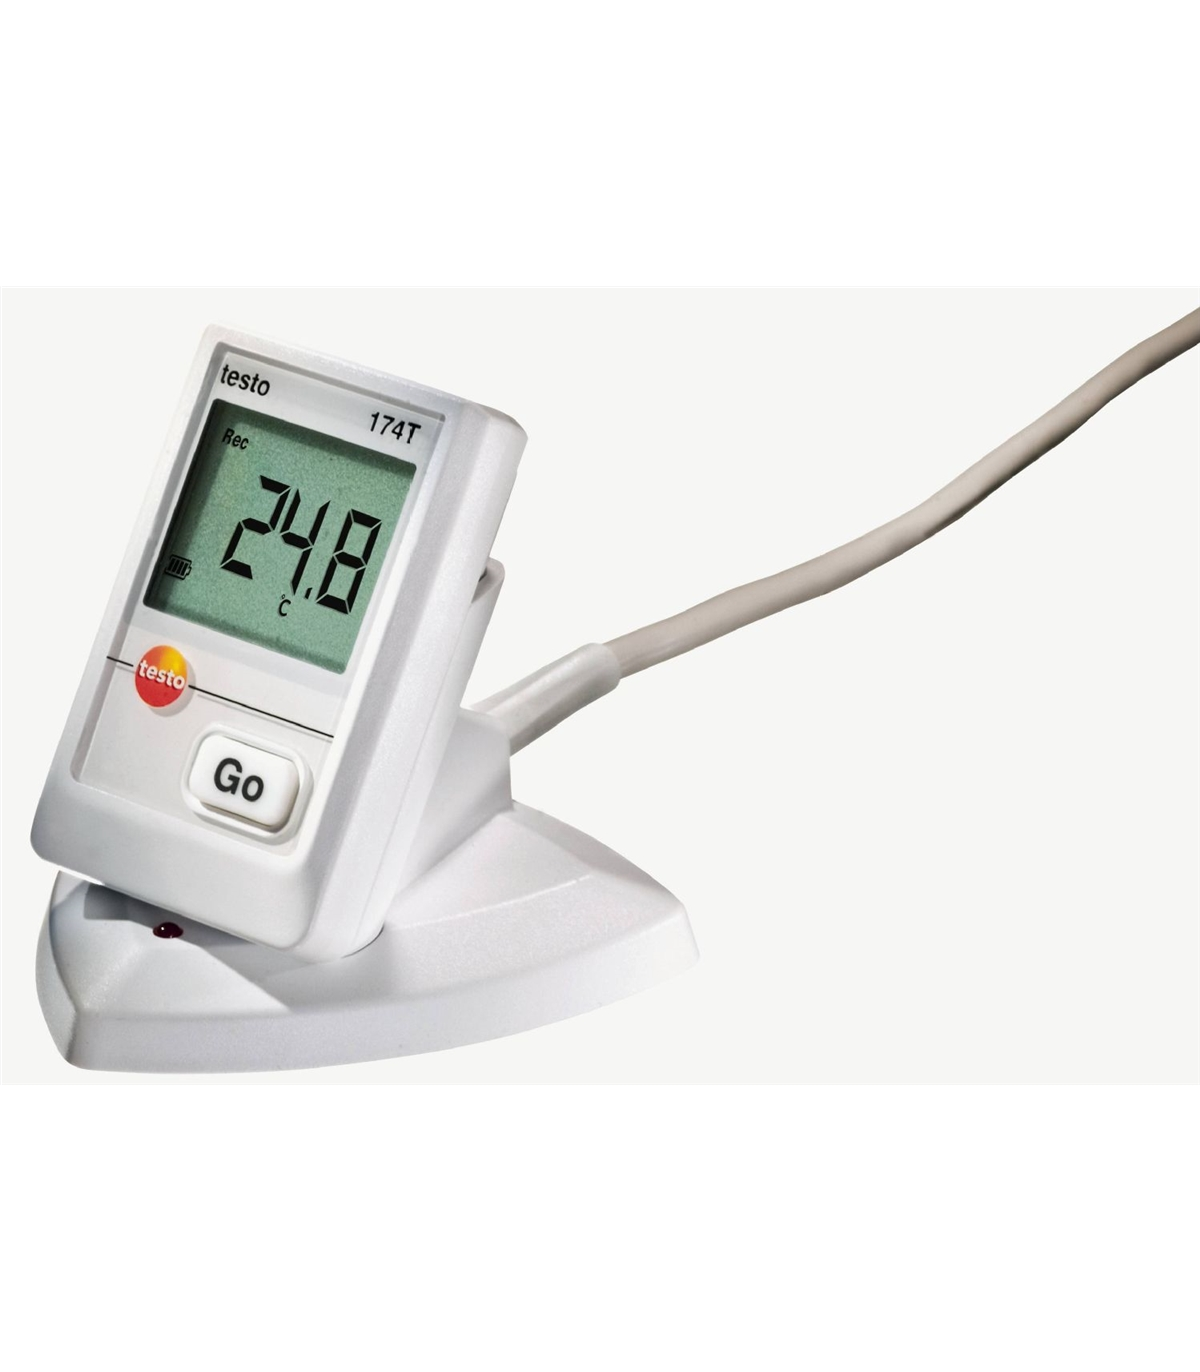 Testo 174 T Mini Data Logger